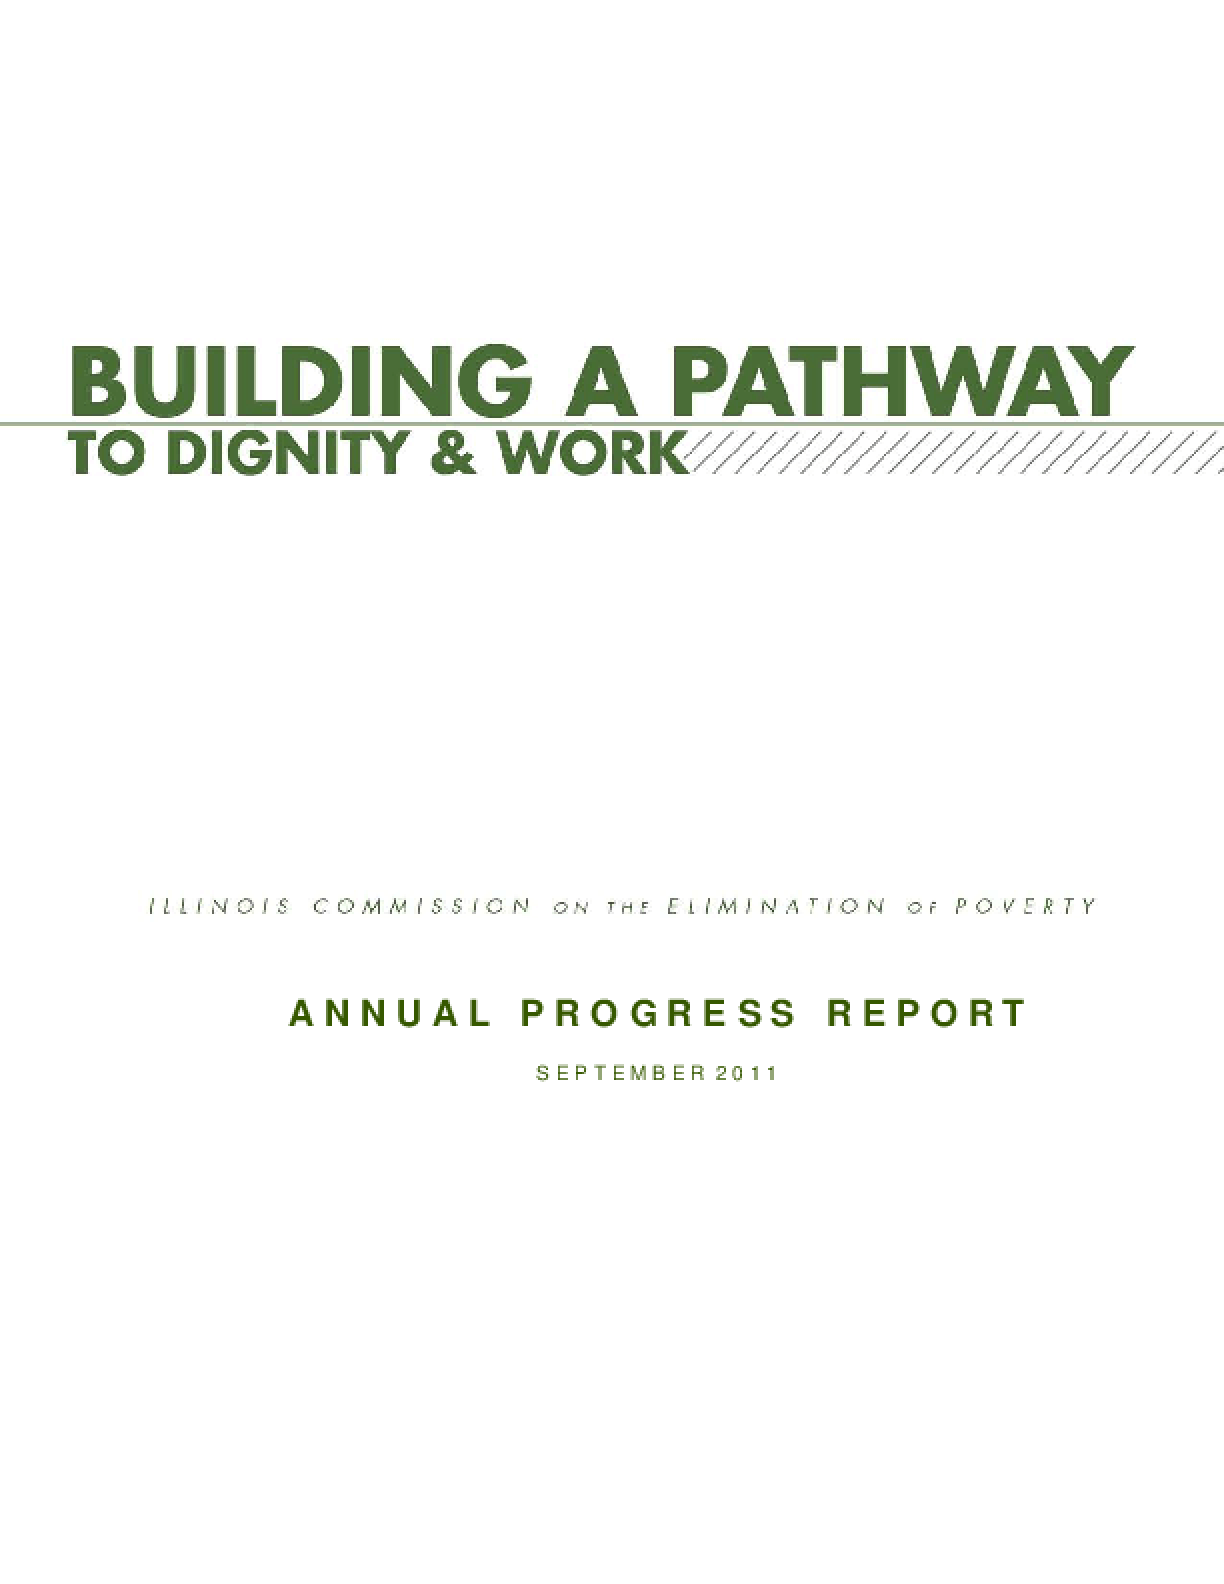 Building a Pathway to Dignity & Work: Annual Progress Report 2011